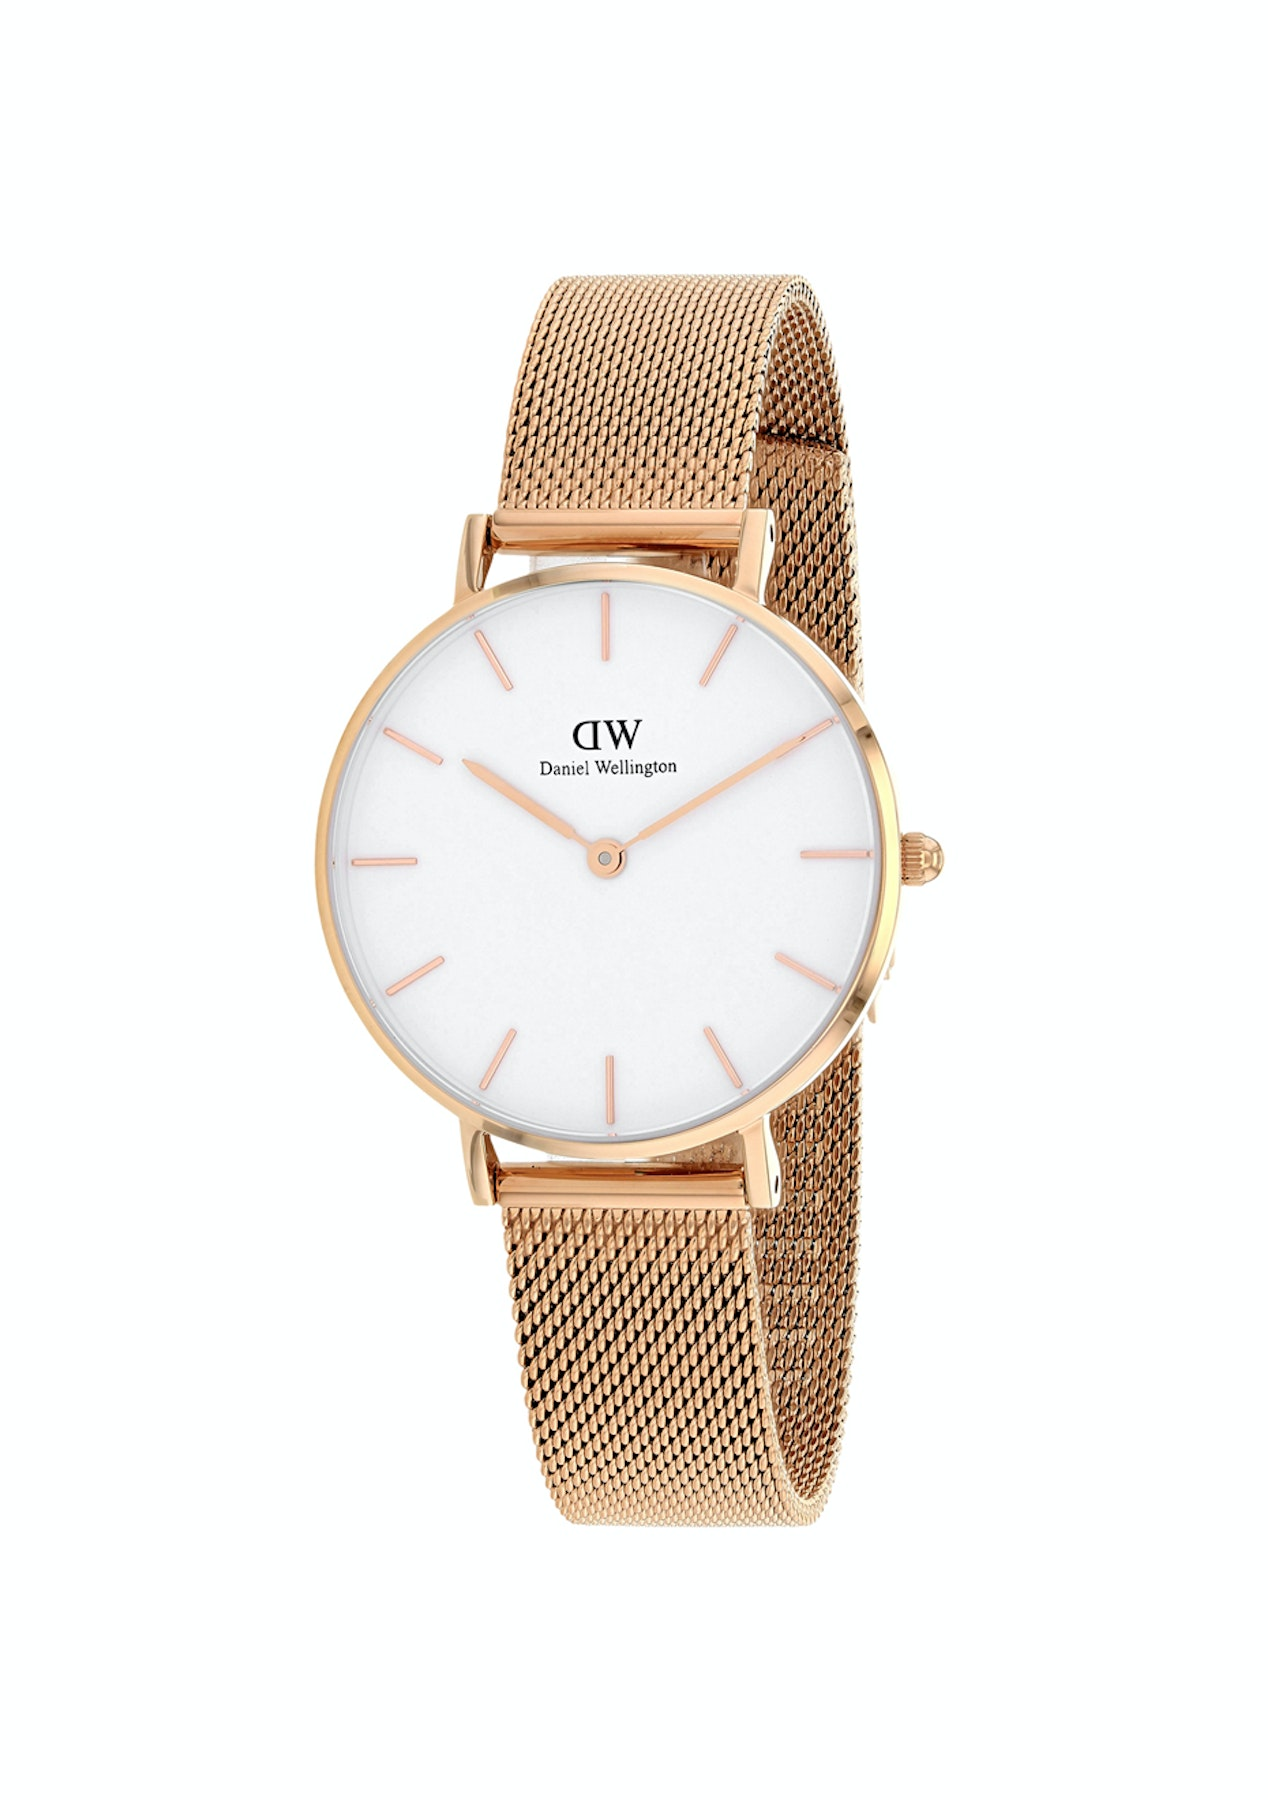 29cc31fac184 Daniel Wellington Petite Melrose 32mm - White Rose gold - Best Selling  Watches - Onceit